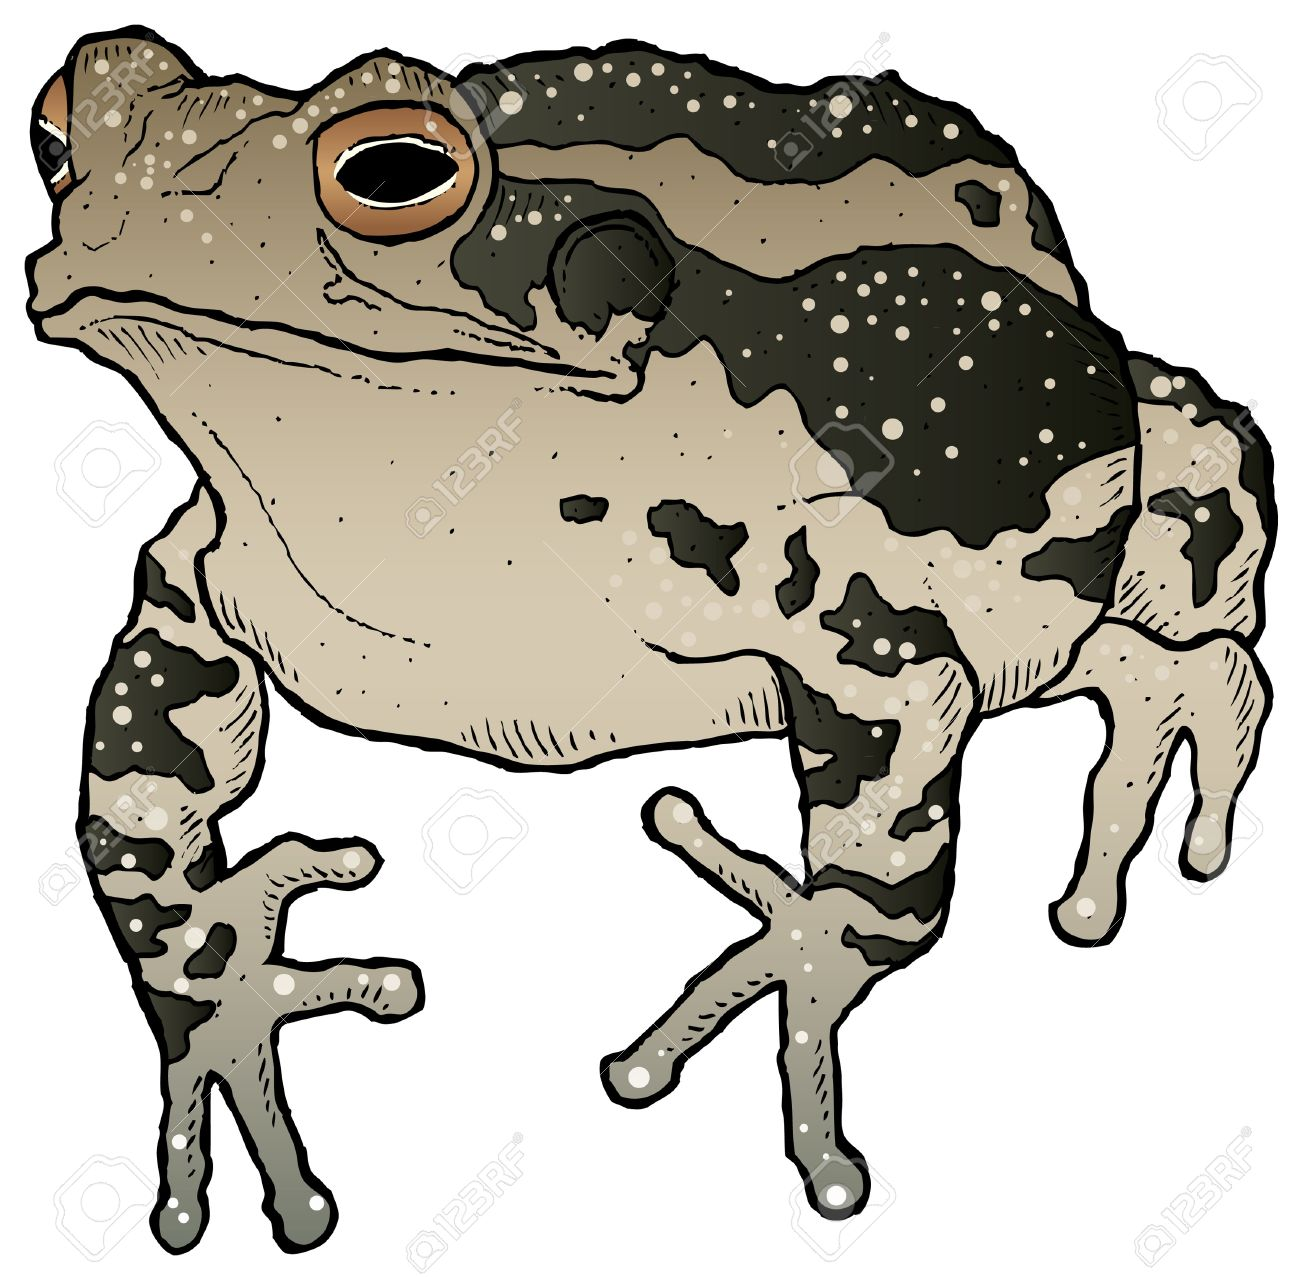 Toad clipart #11, Download drawings